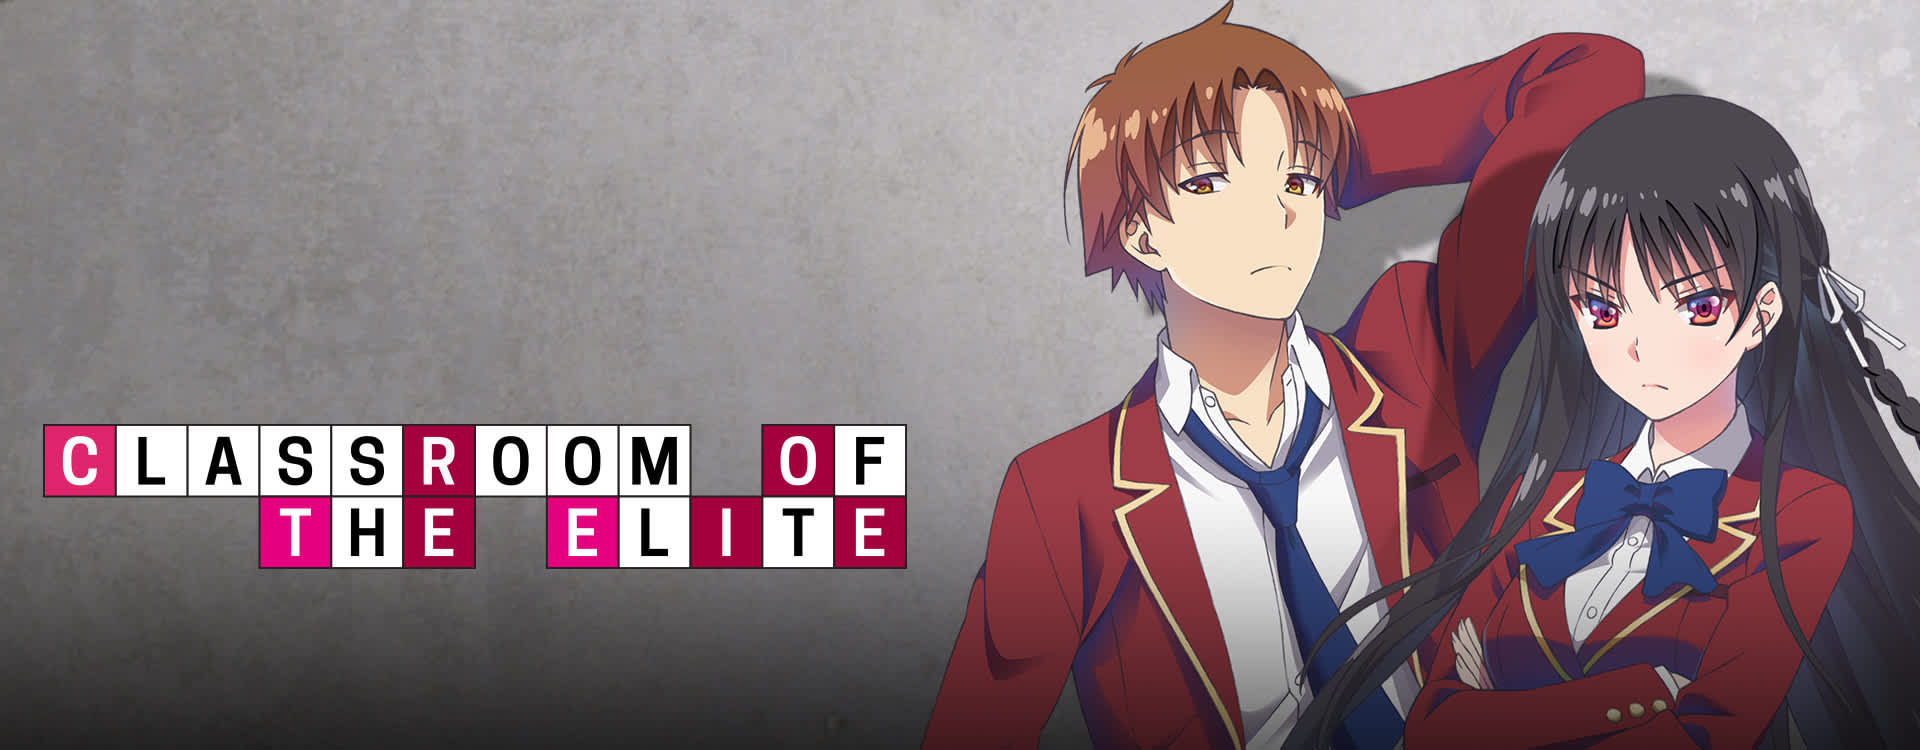 Watch Classroom Of The Elite Episodes Sub Dub Comedy Slice Of